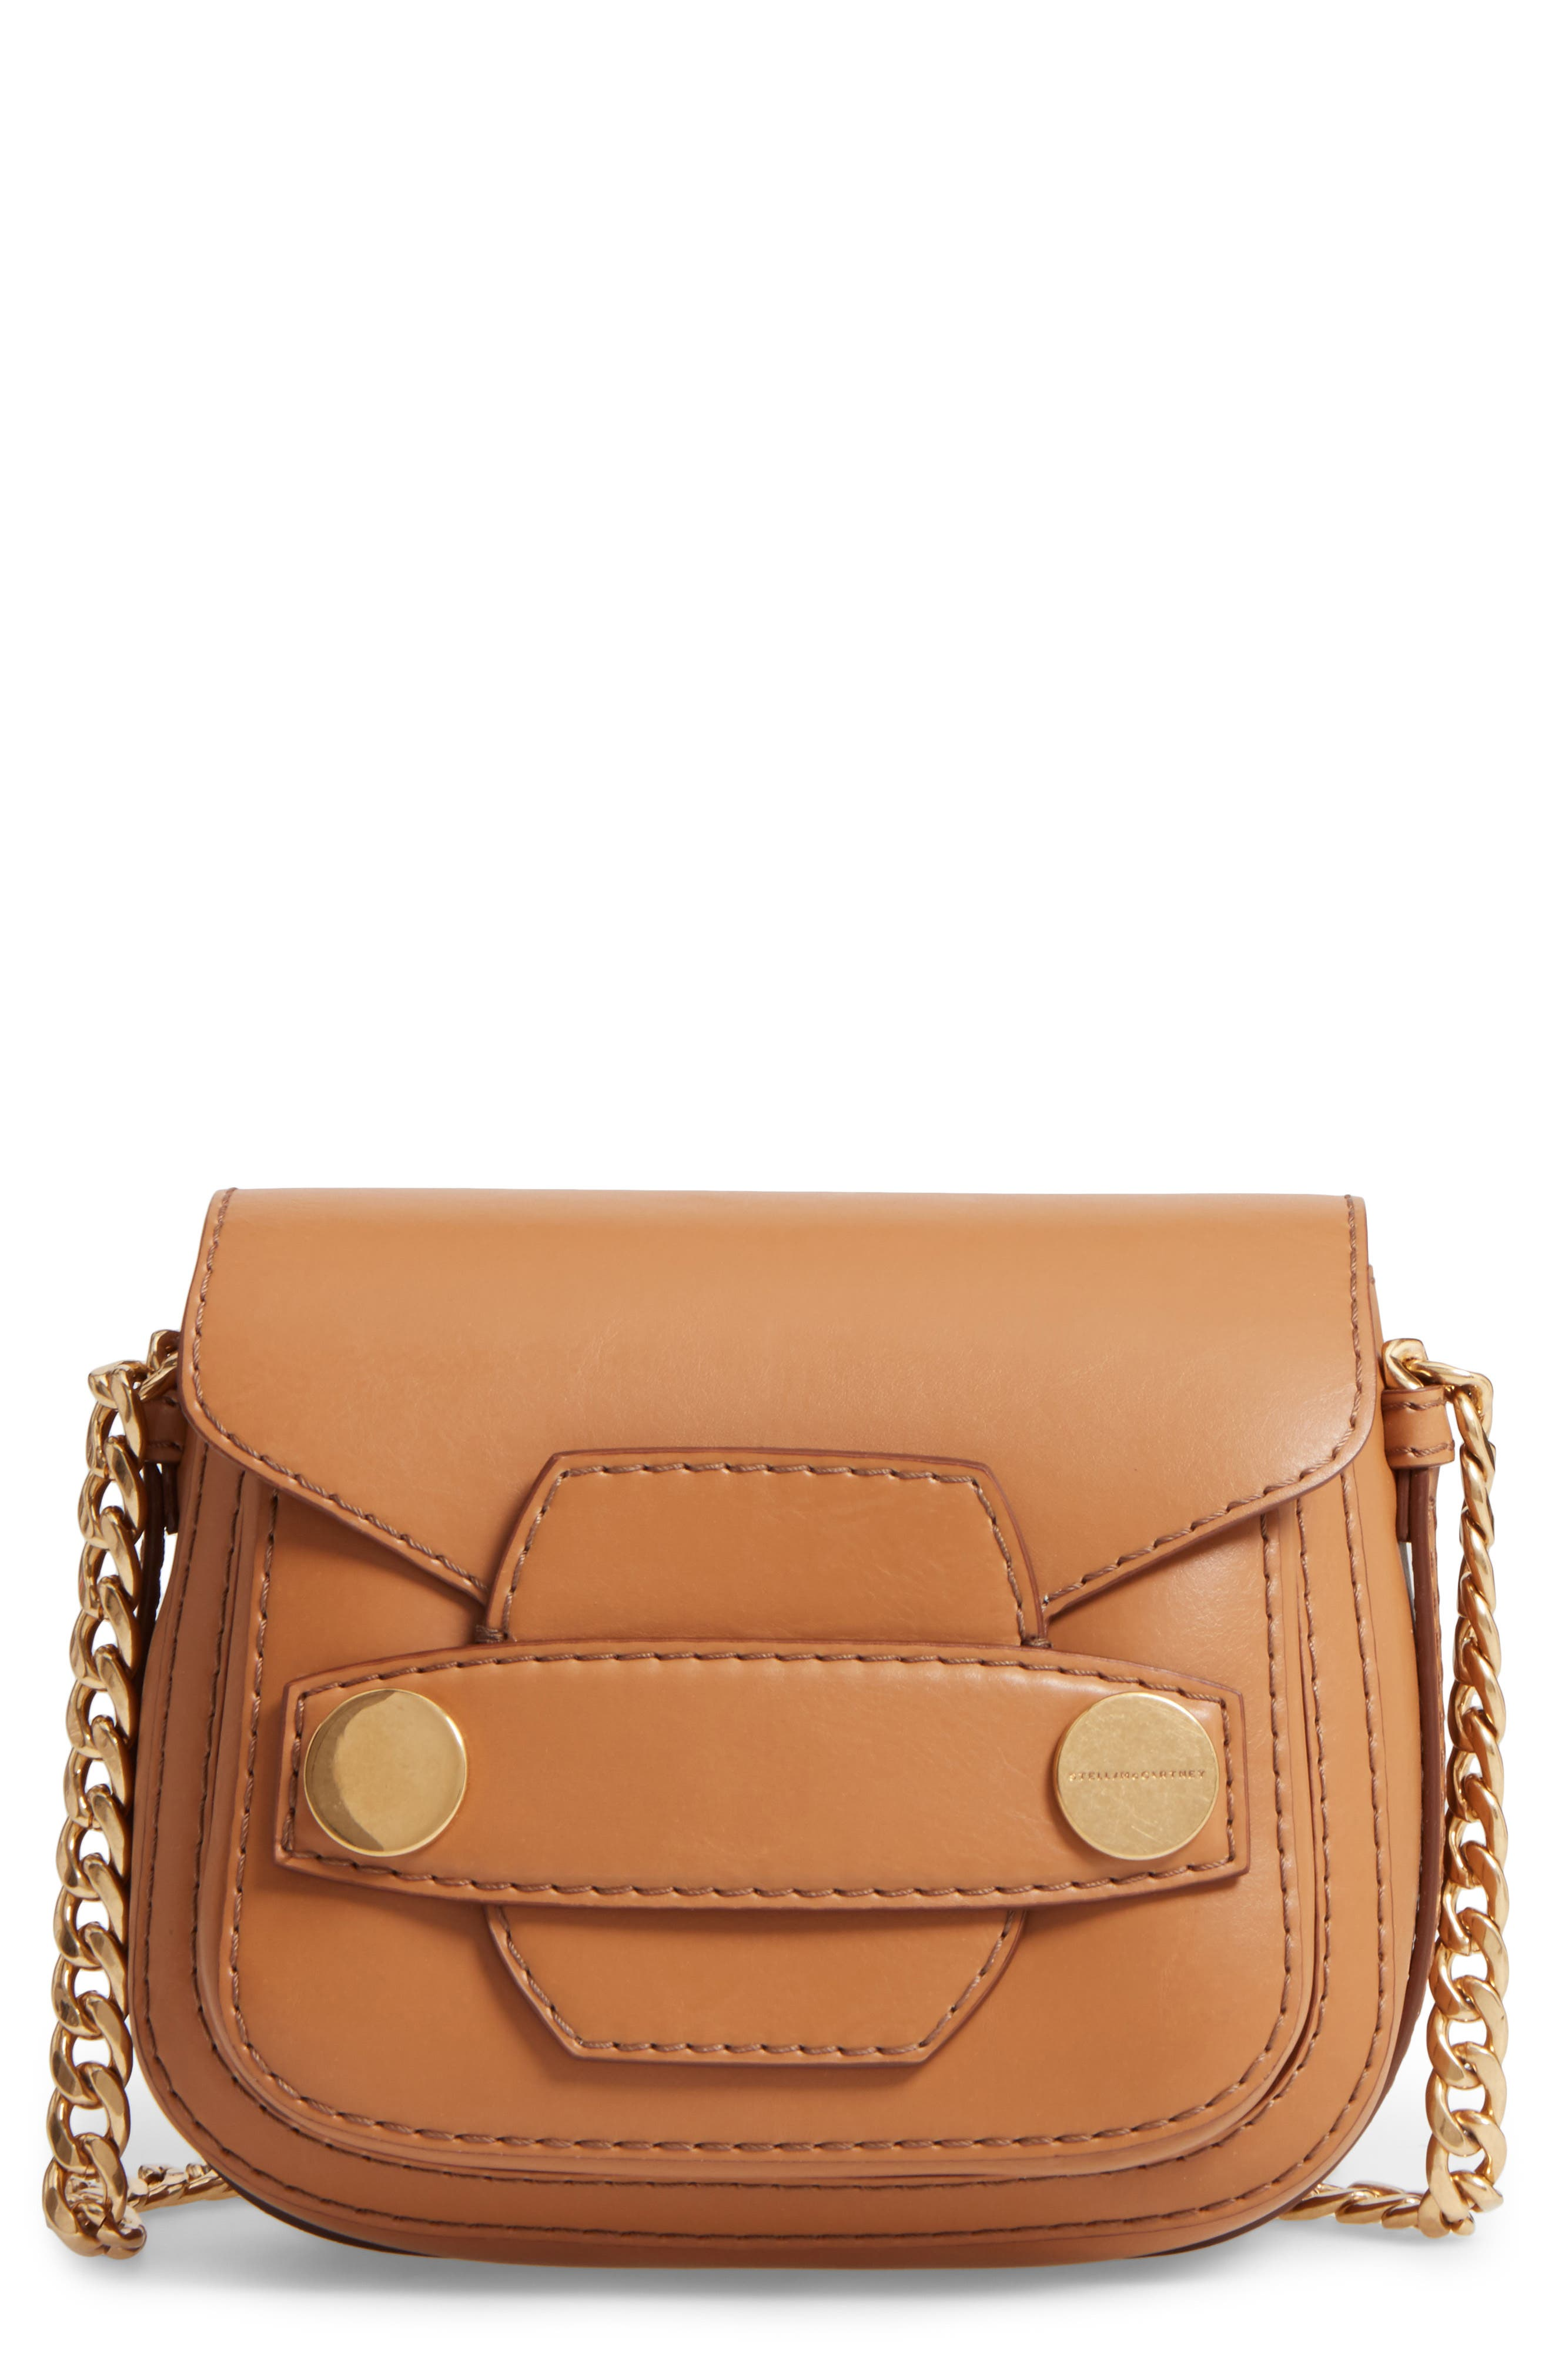 Textured Faux Leather Crossbody Bag,                             Main thumbnail 1, color,                             294